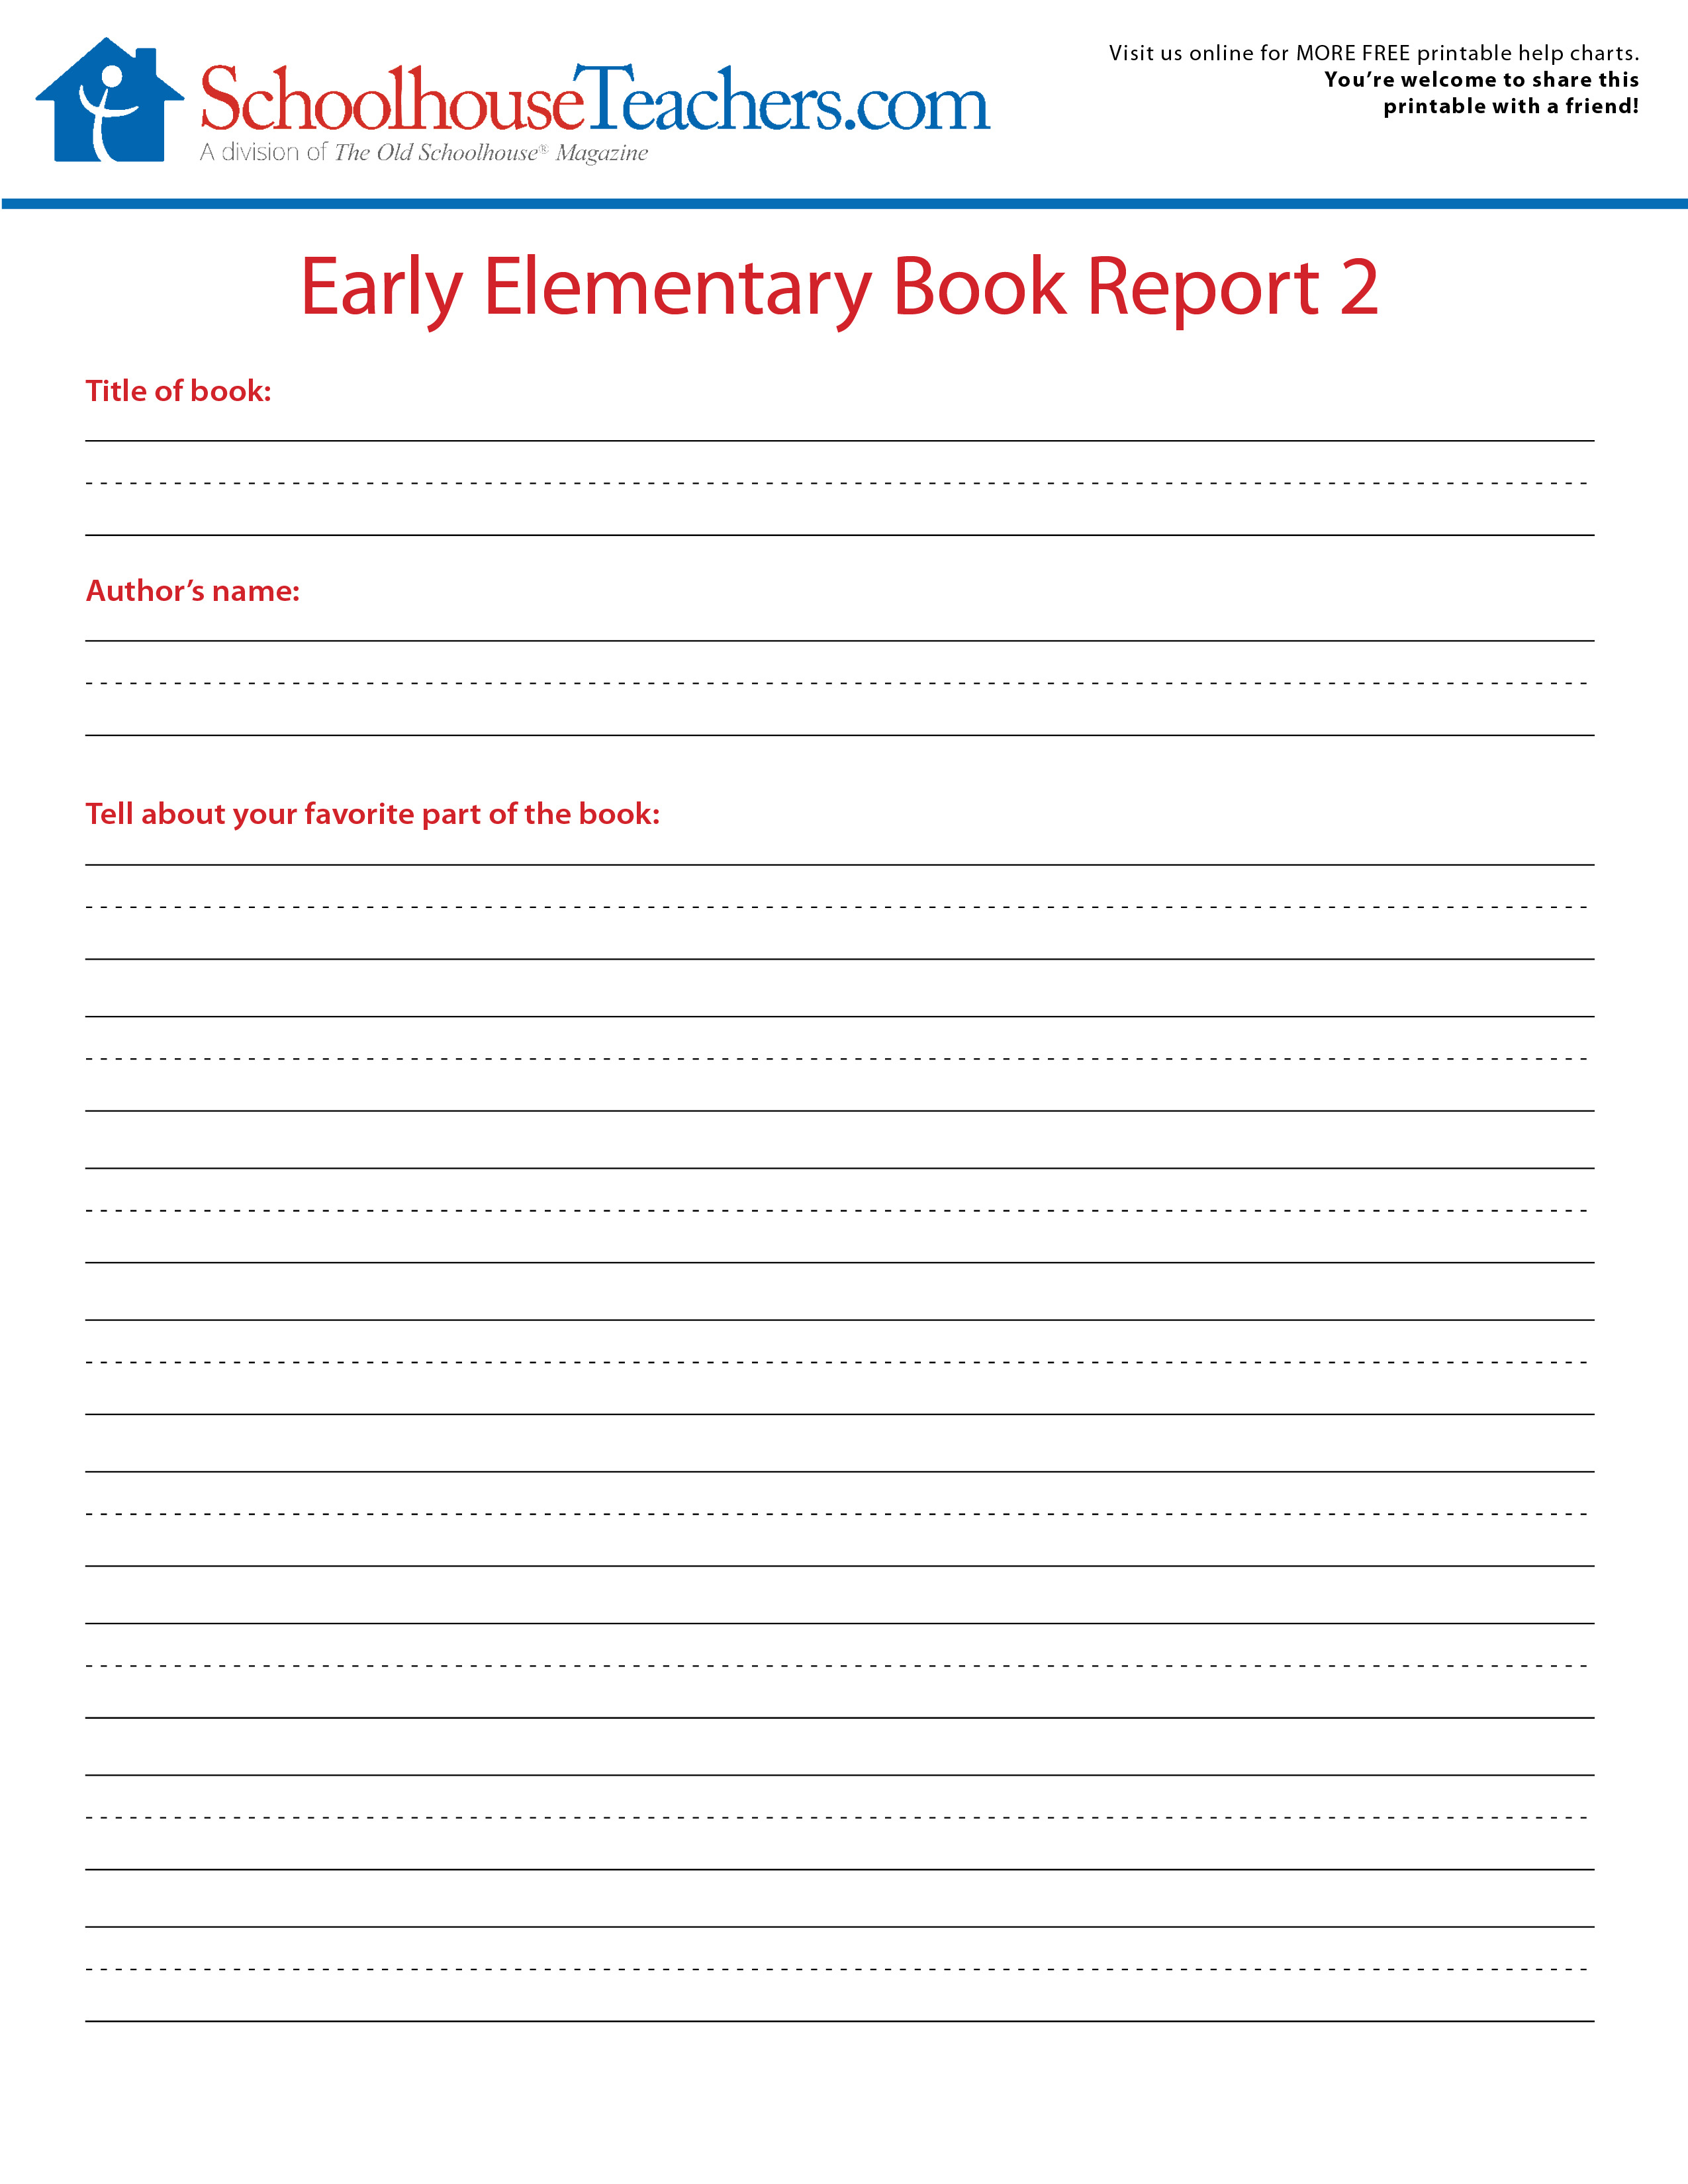 2 Free Elementary School Book Report Print Out Forms